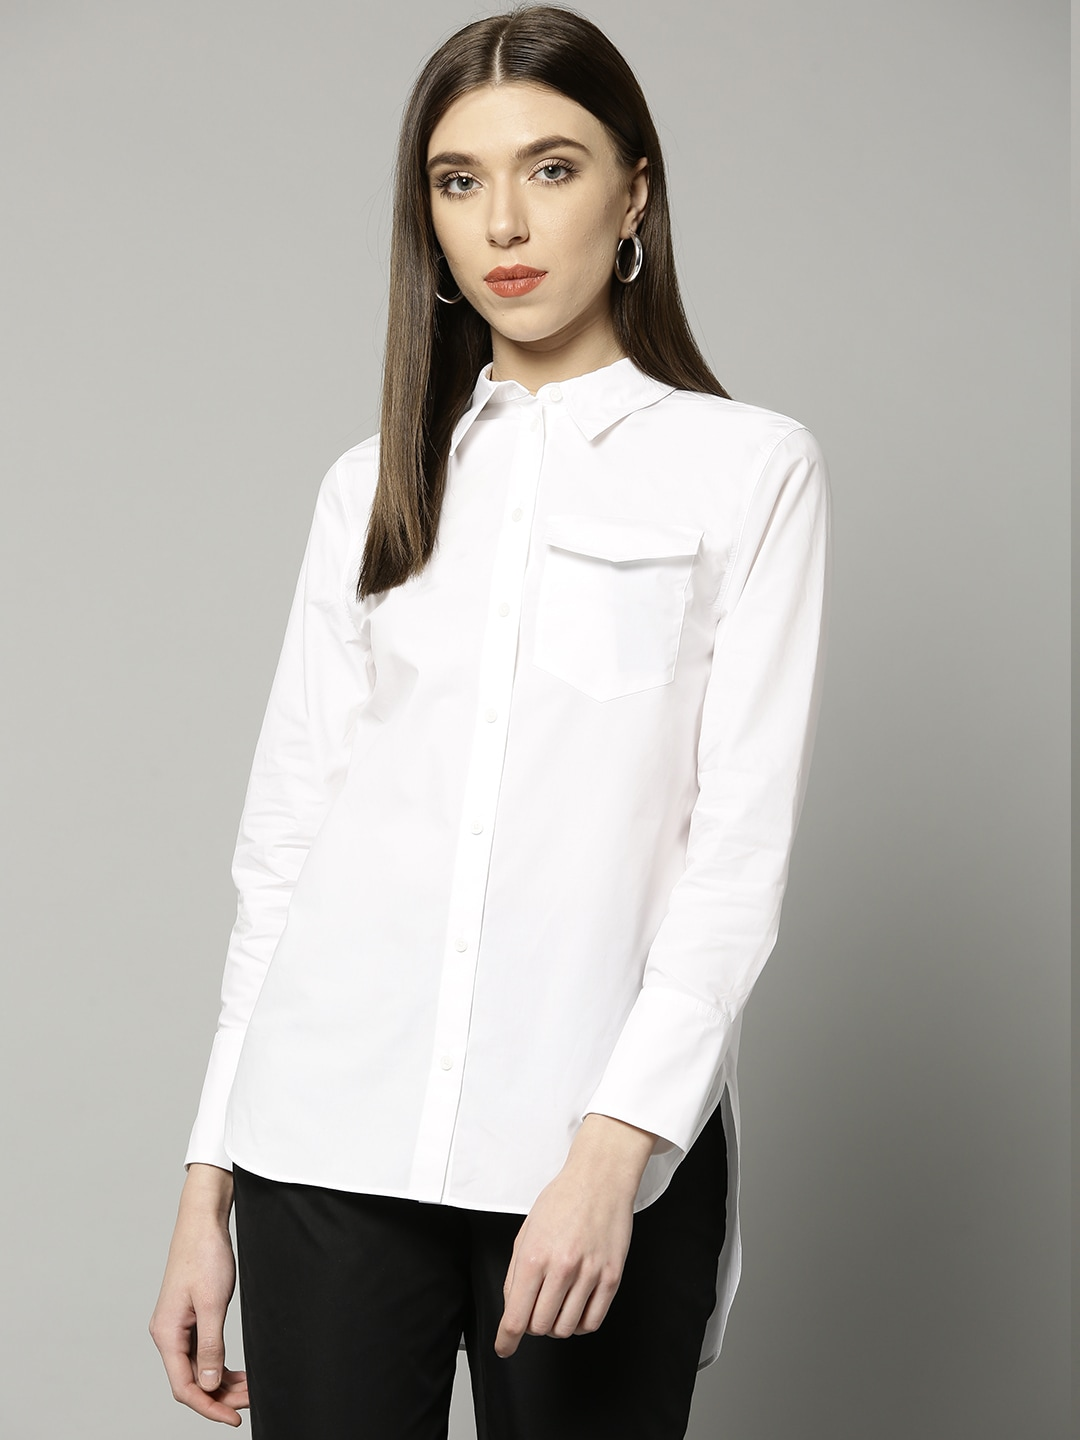 Marks And Spencer Clothing Buy Ms Men Women Clothing Online